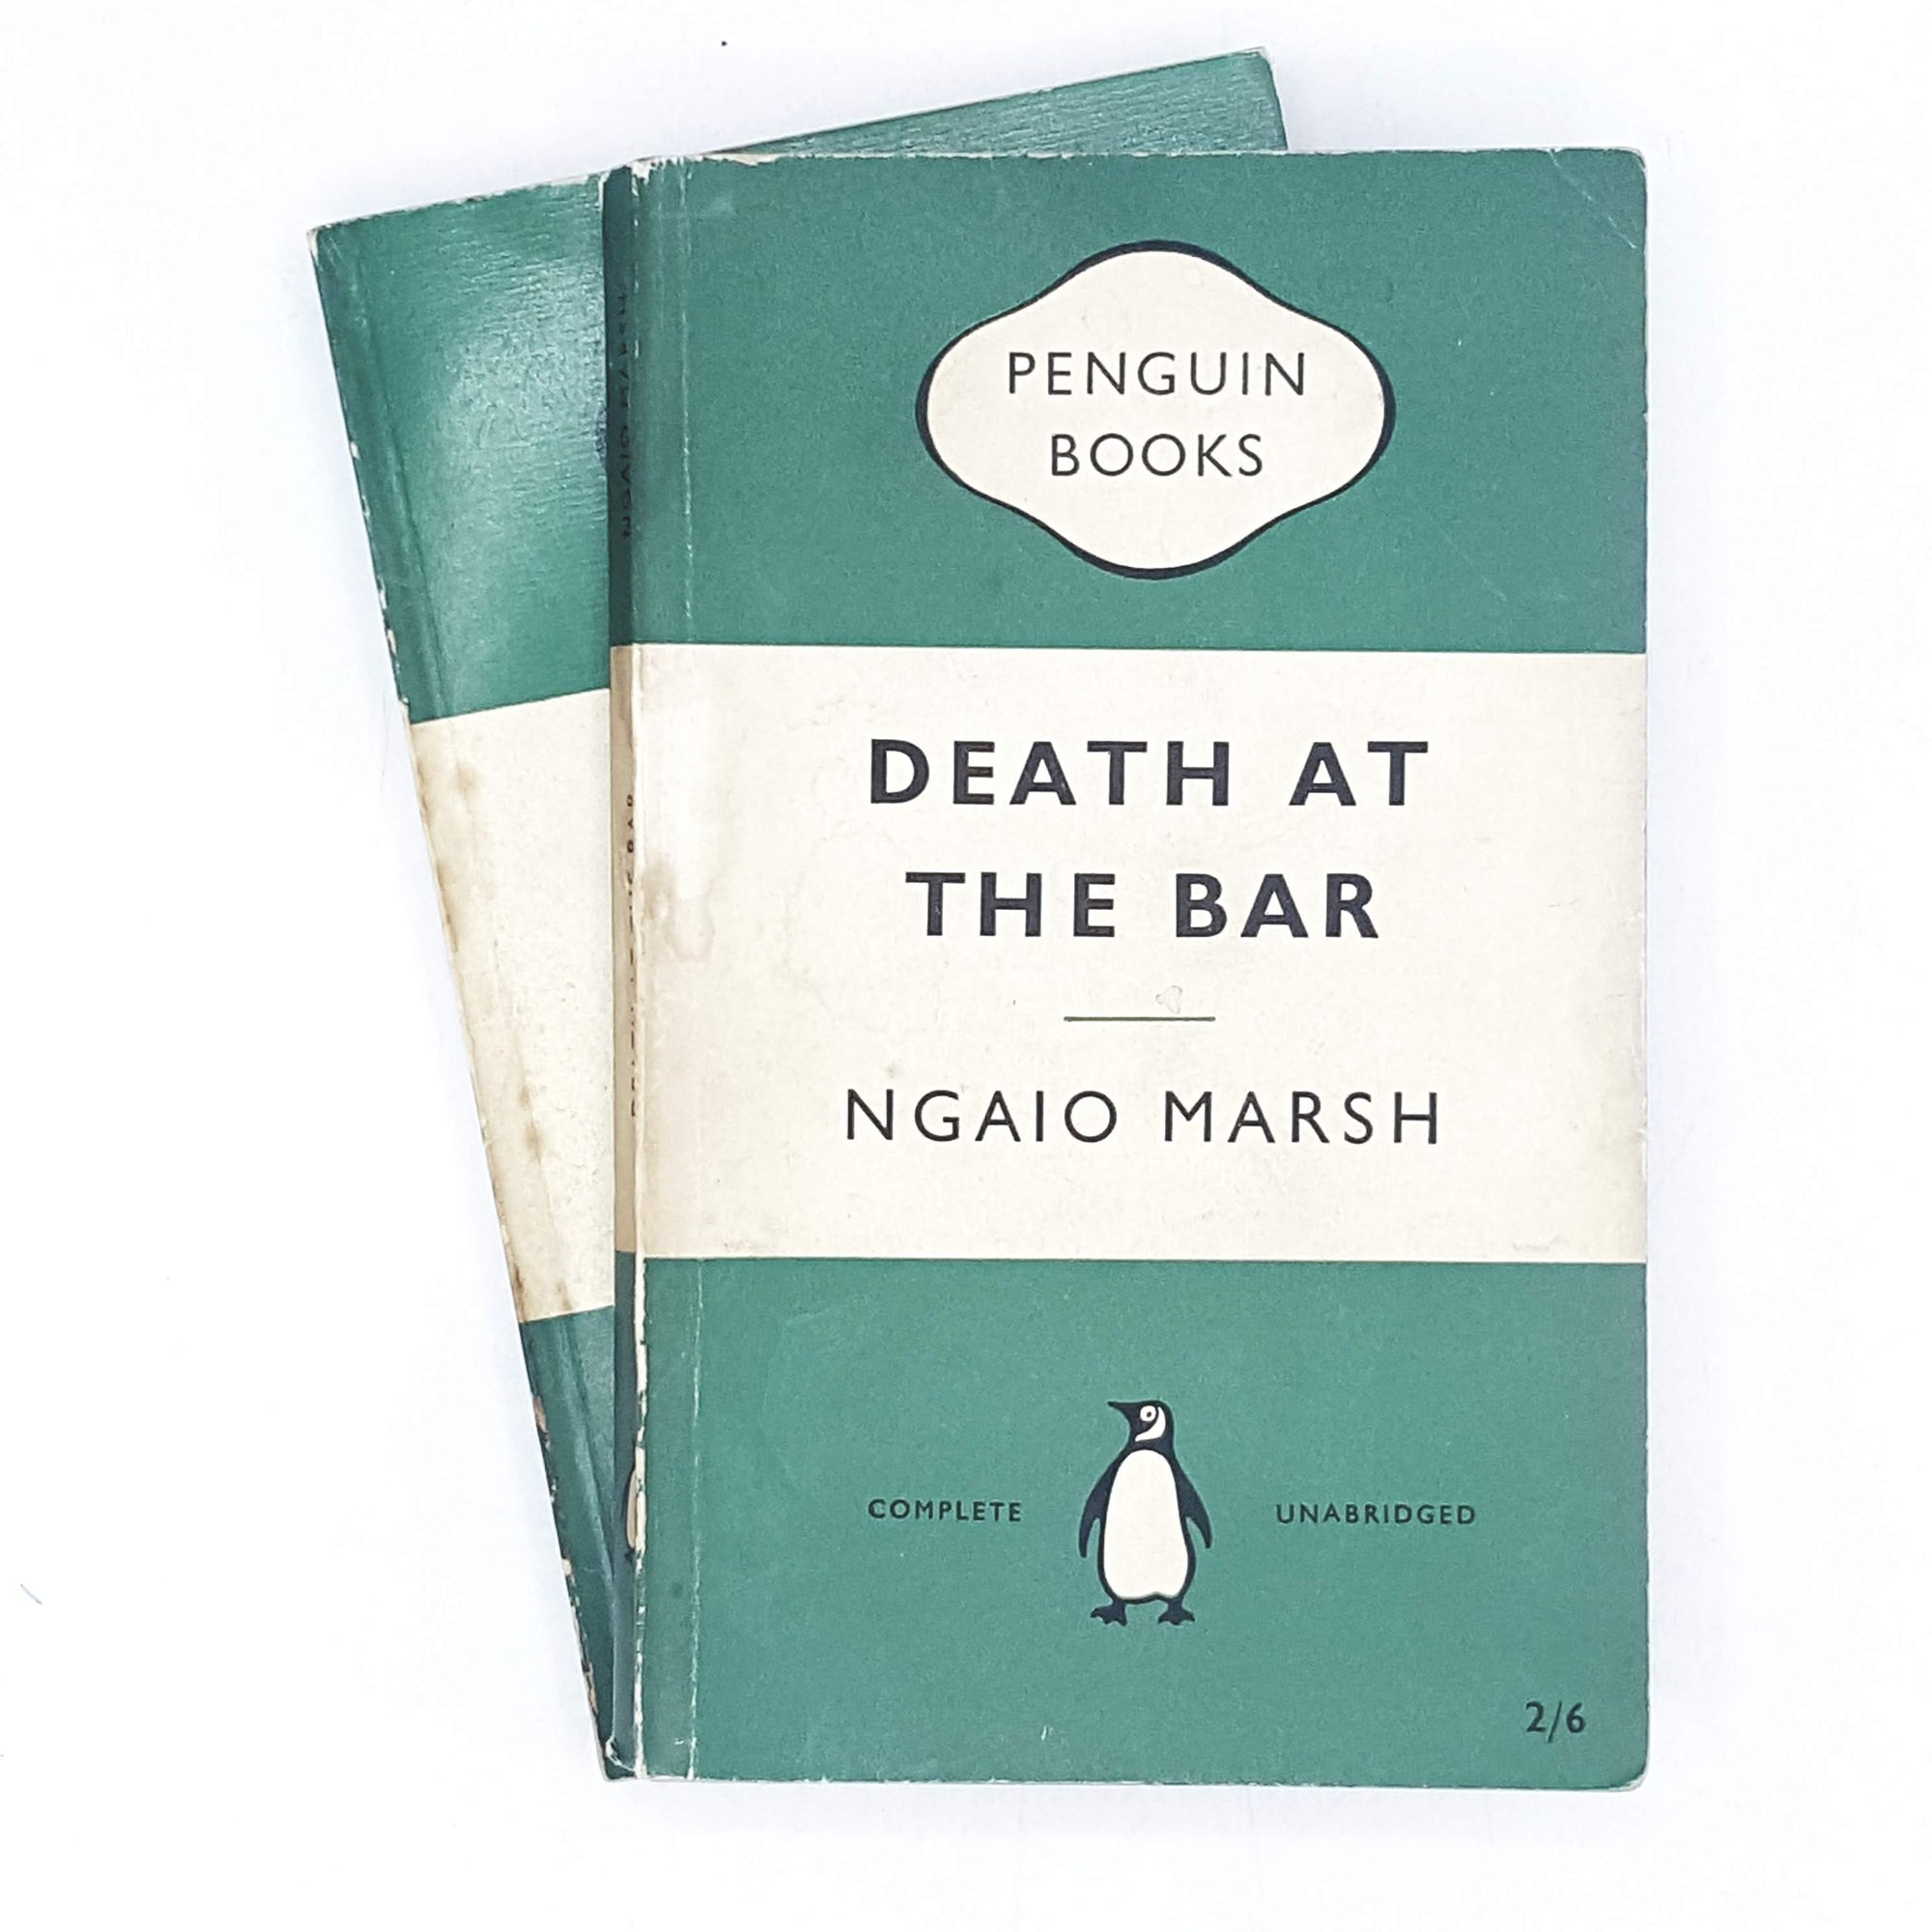 Collection Ngaio Marsh Vintage Penguin Crime set 1955 - 1959